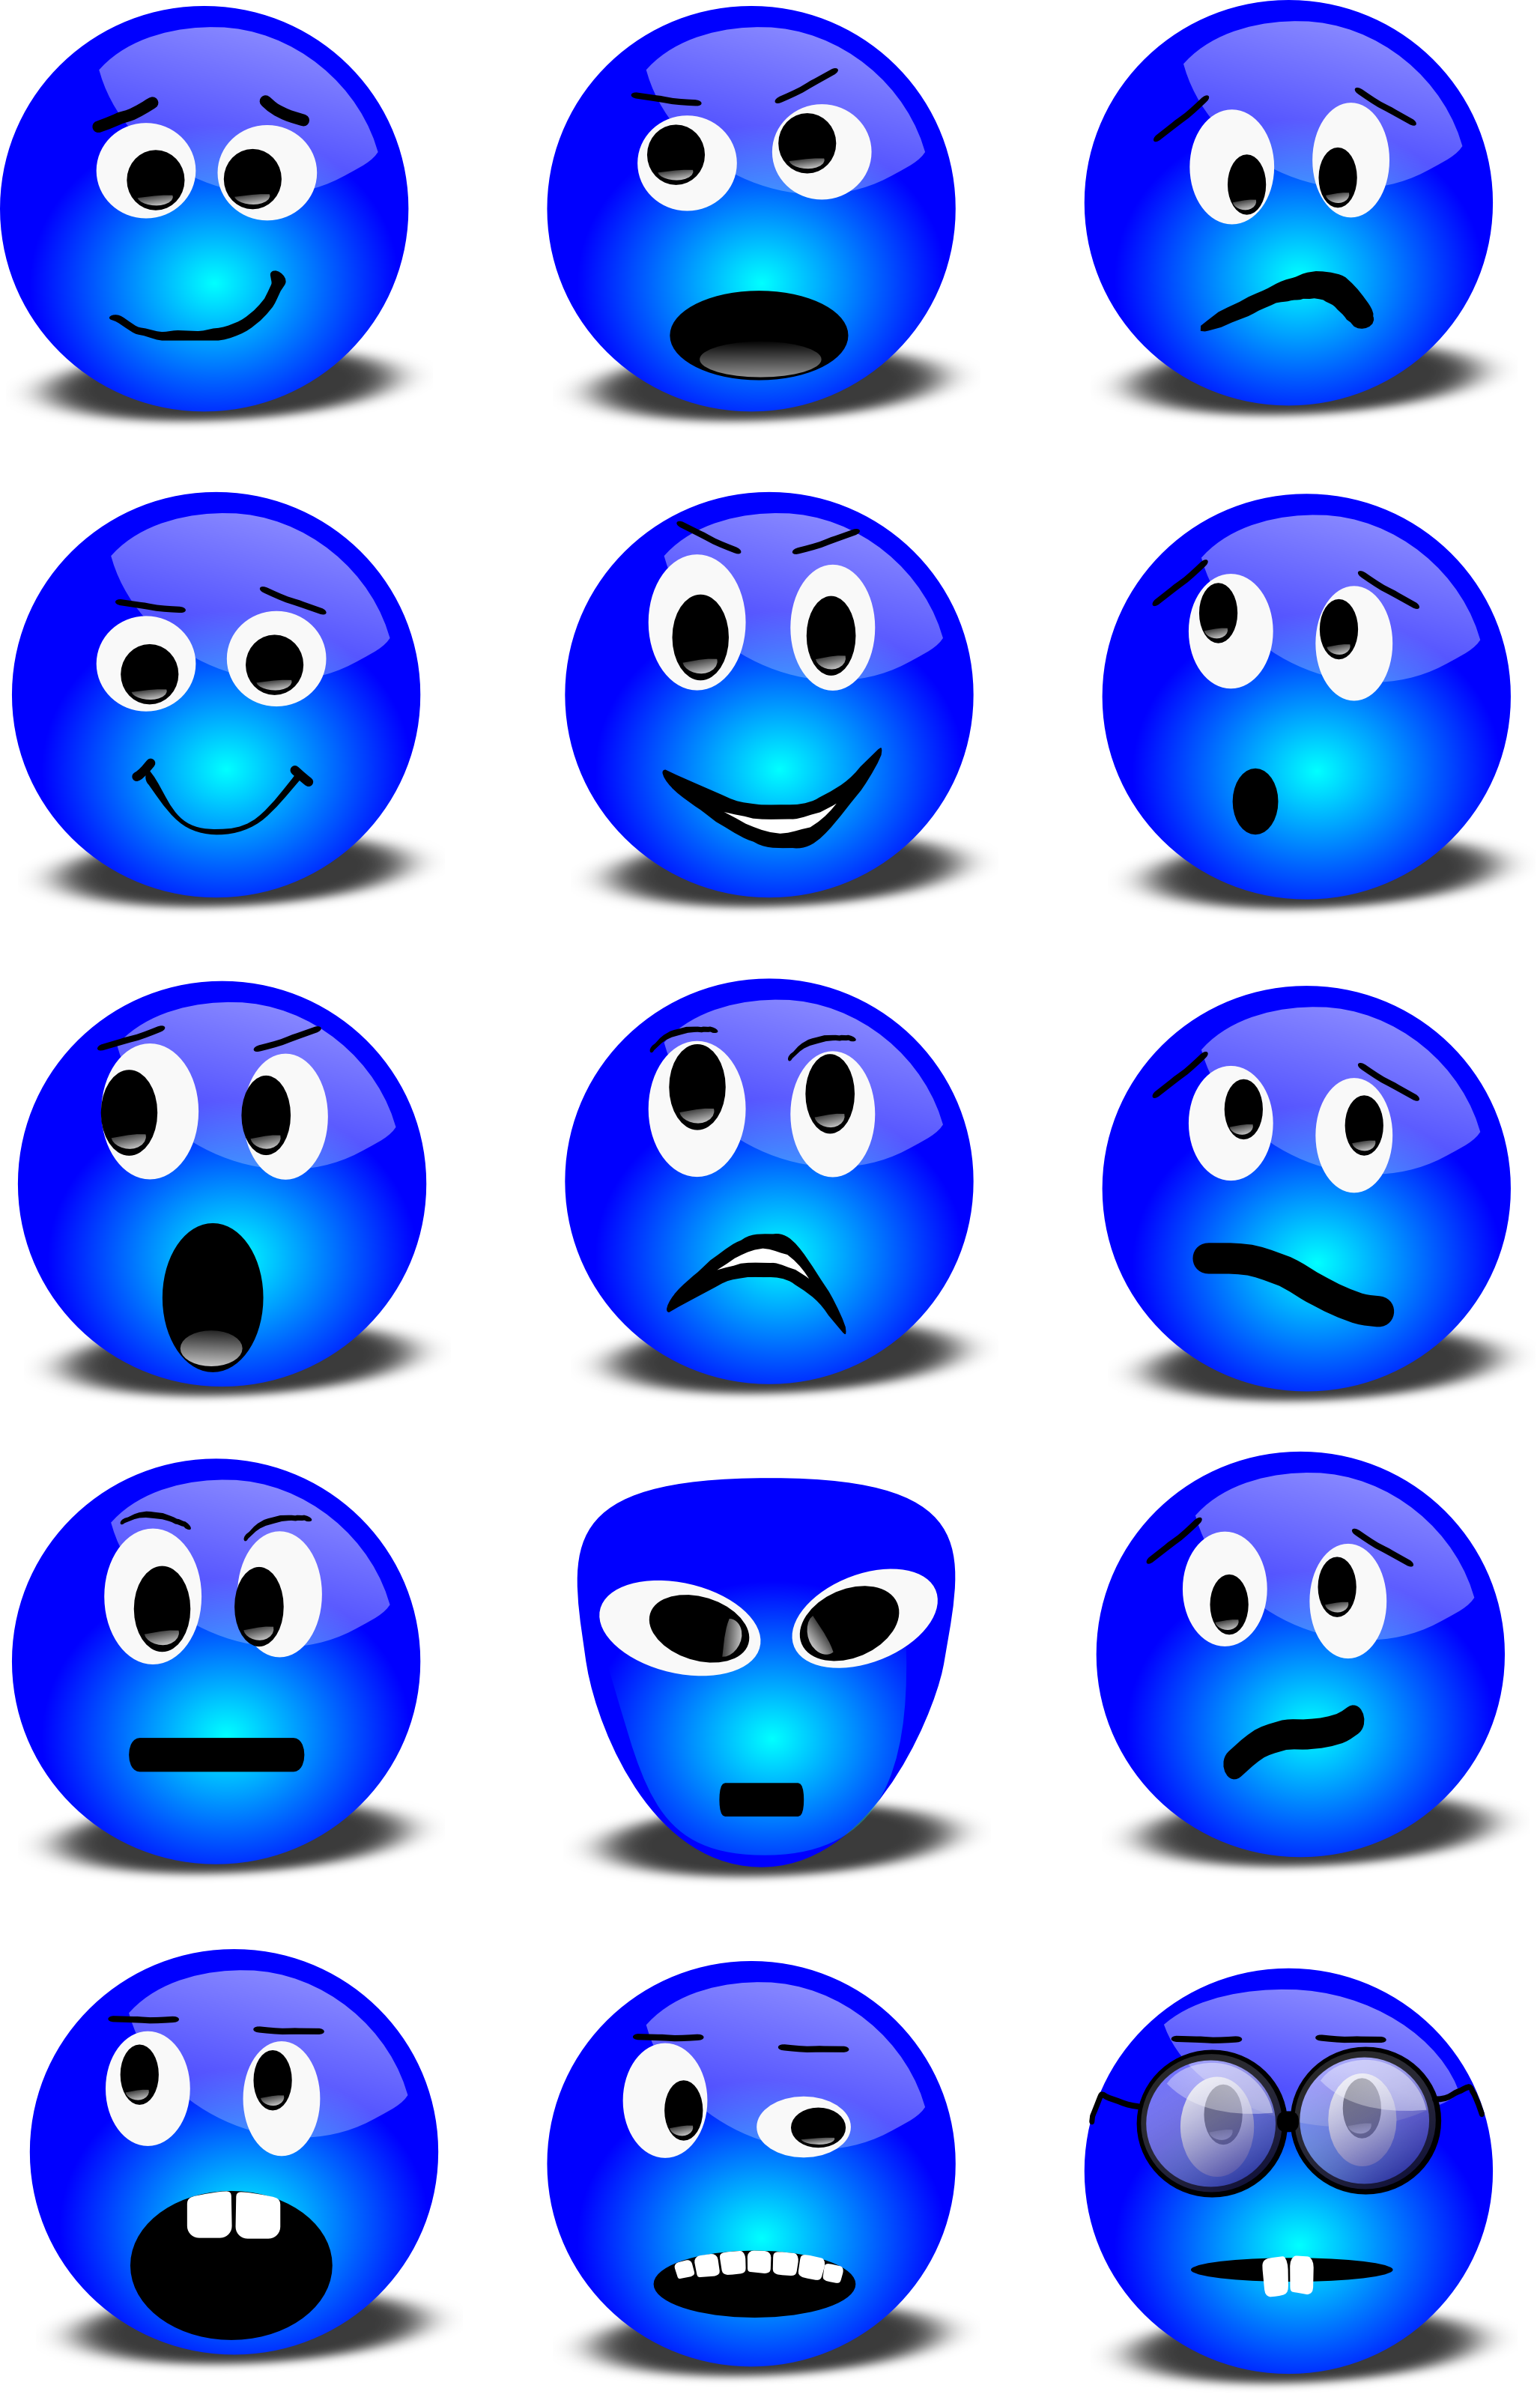 Free vector graphic featuring a series of blue 3d smiley faces.